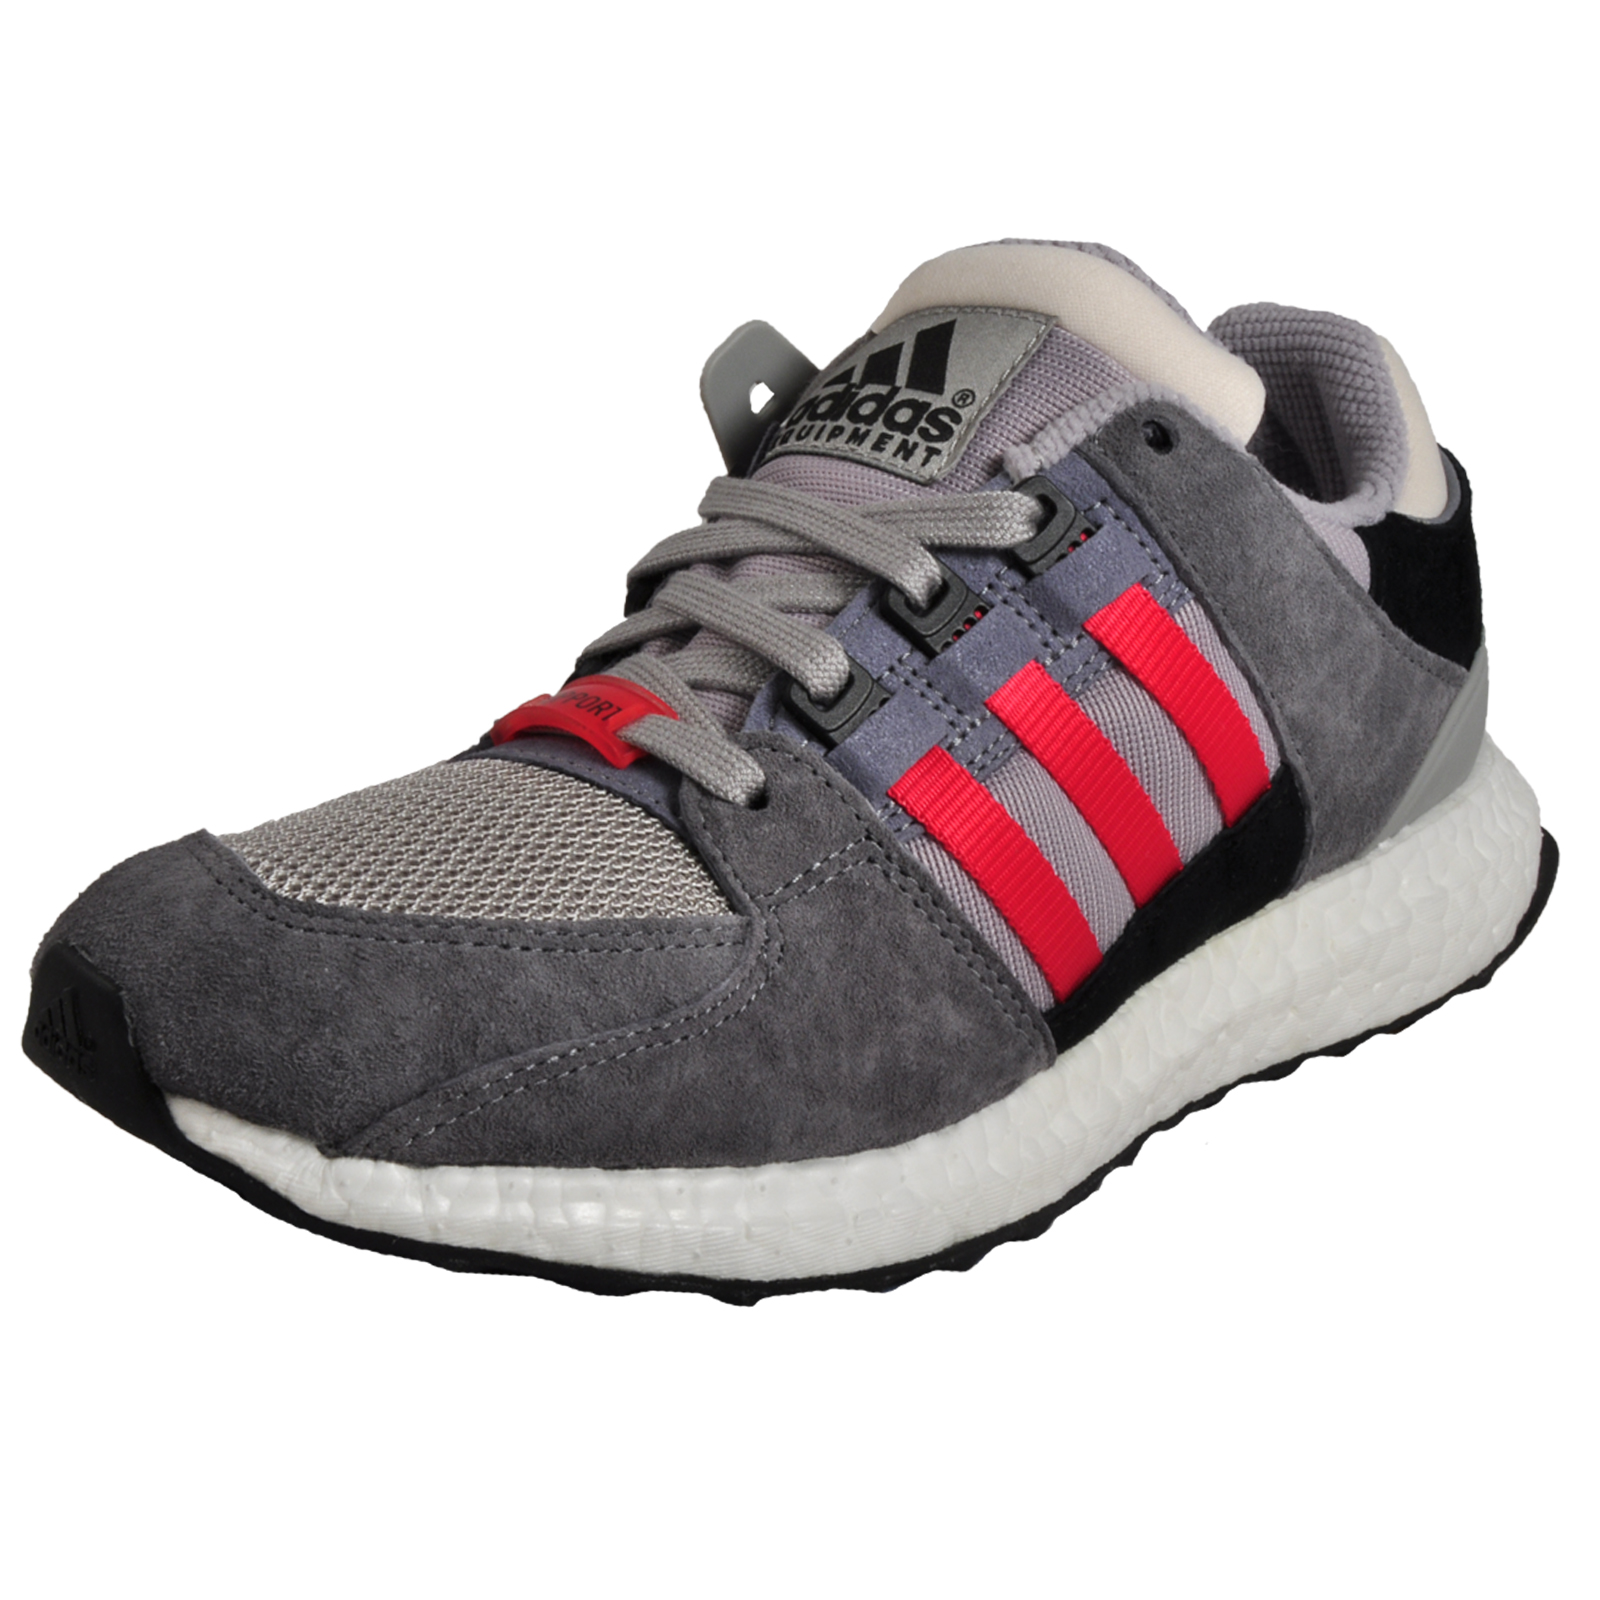 d31c3116de640 Adidas Equipment Support Boost 93  16 Mens Classic Casual Retro Trainers  Grey